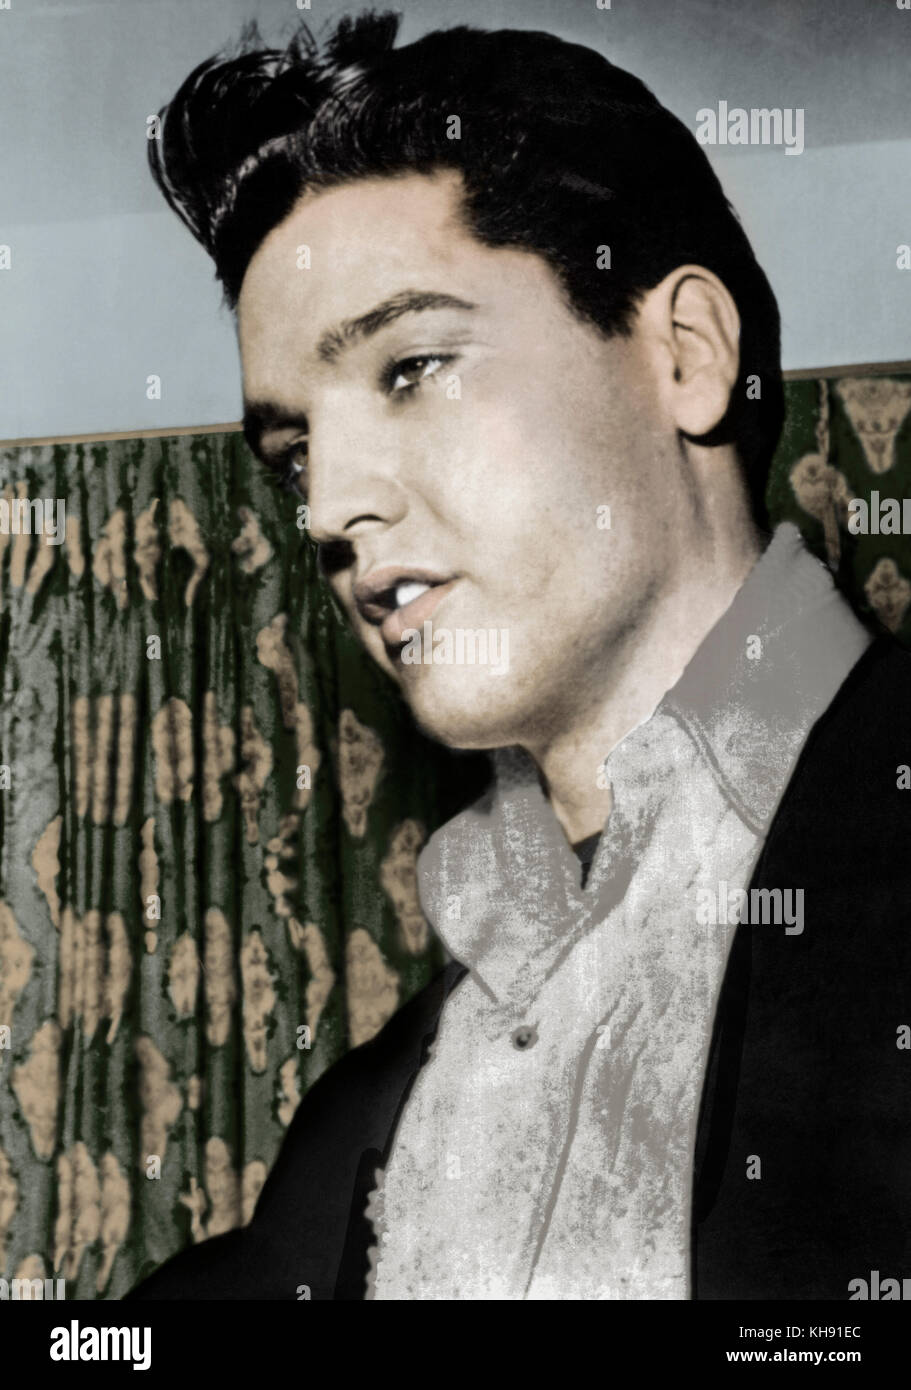 American Singer & Actor Elvis Presley – Biography and Life Story